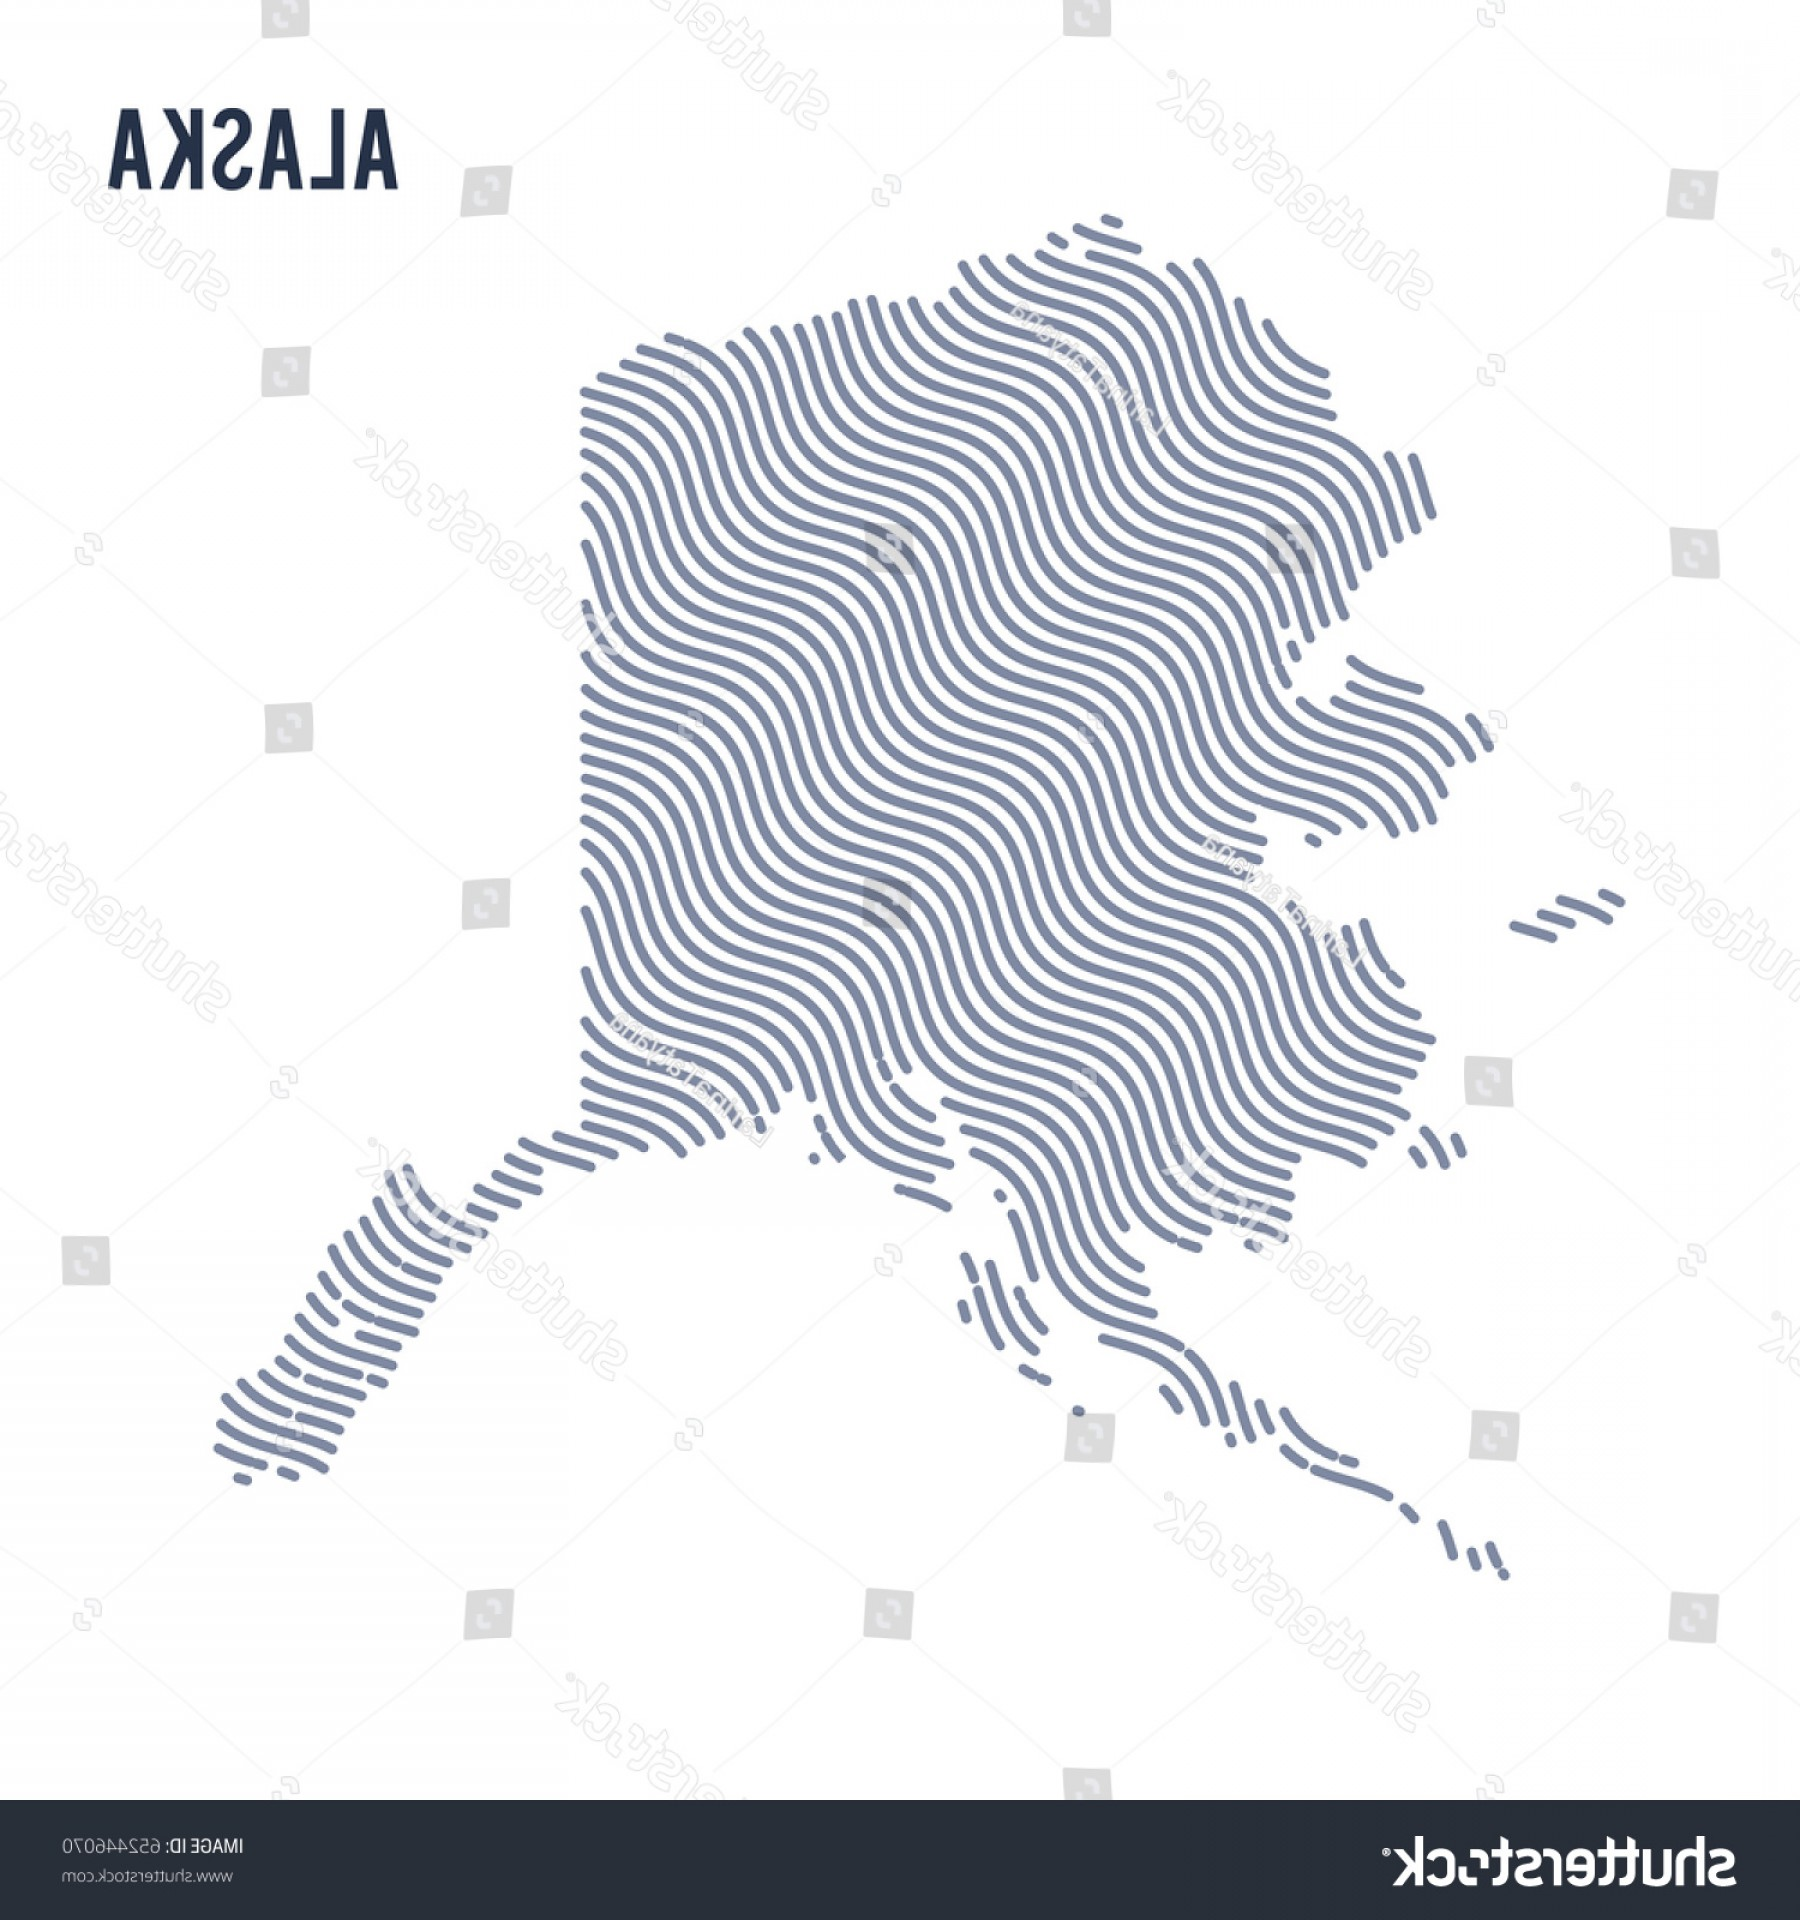 Alaska State White Background Vectors: Vector Abstract Wave Map State Alaska